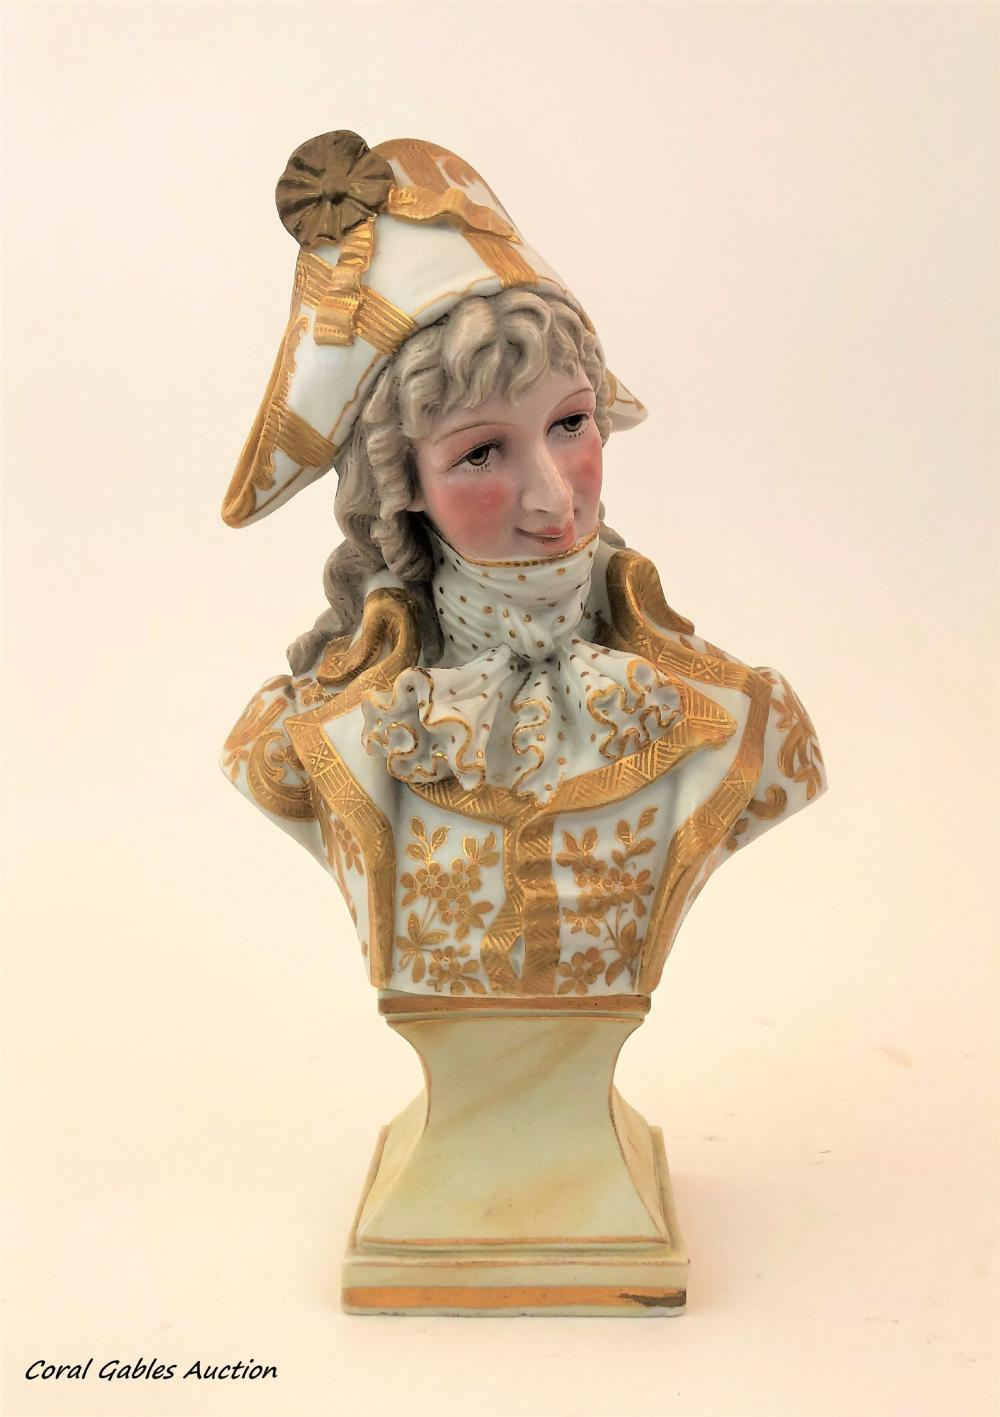 Bust of biscuit of the 19th century